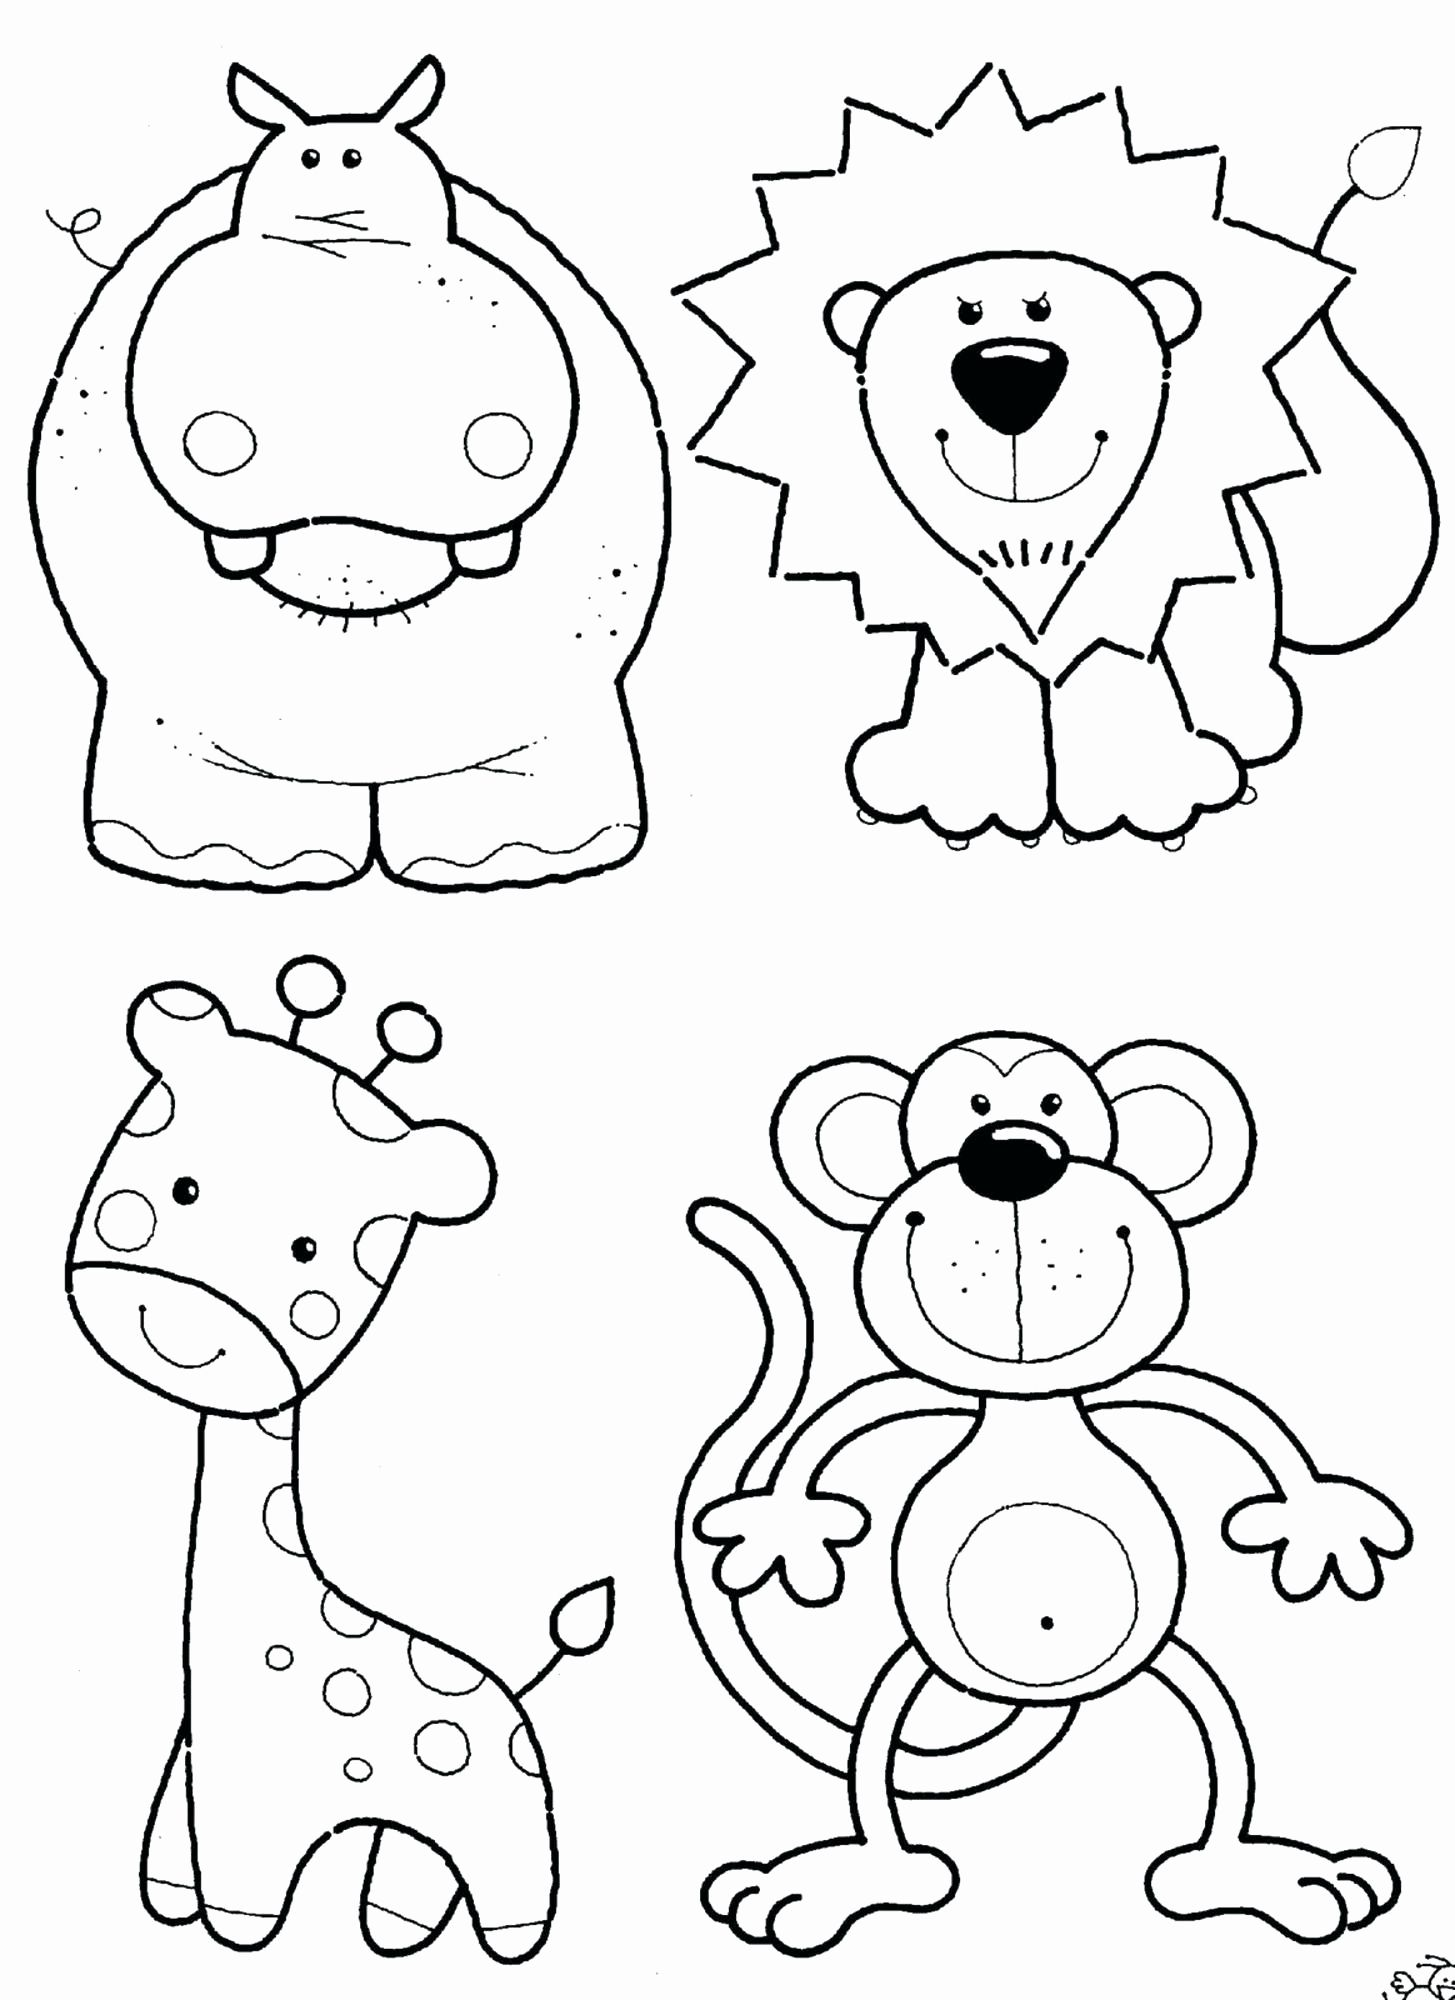 Zoo Animal Coloring Pages For Kids Zoo Coloring Pages Giraffe Coloring Pages Animal Coloring Books